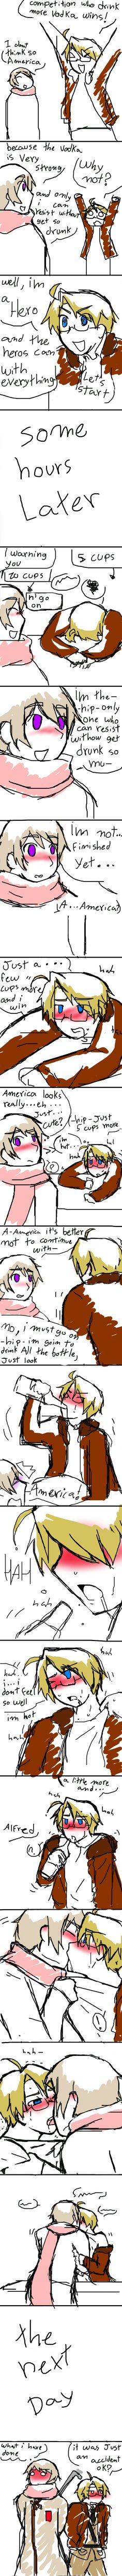 LOL I can't stop laughing!!! APH the effect of vodka by gakumi.deviantart.com on @deviantART